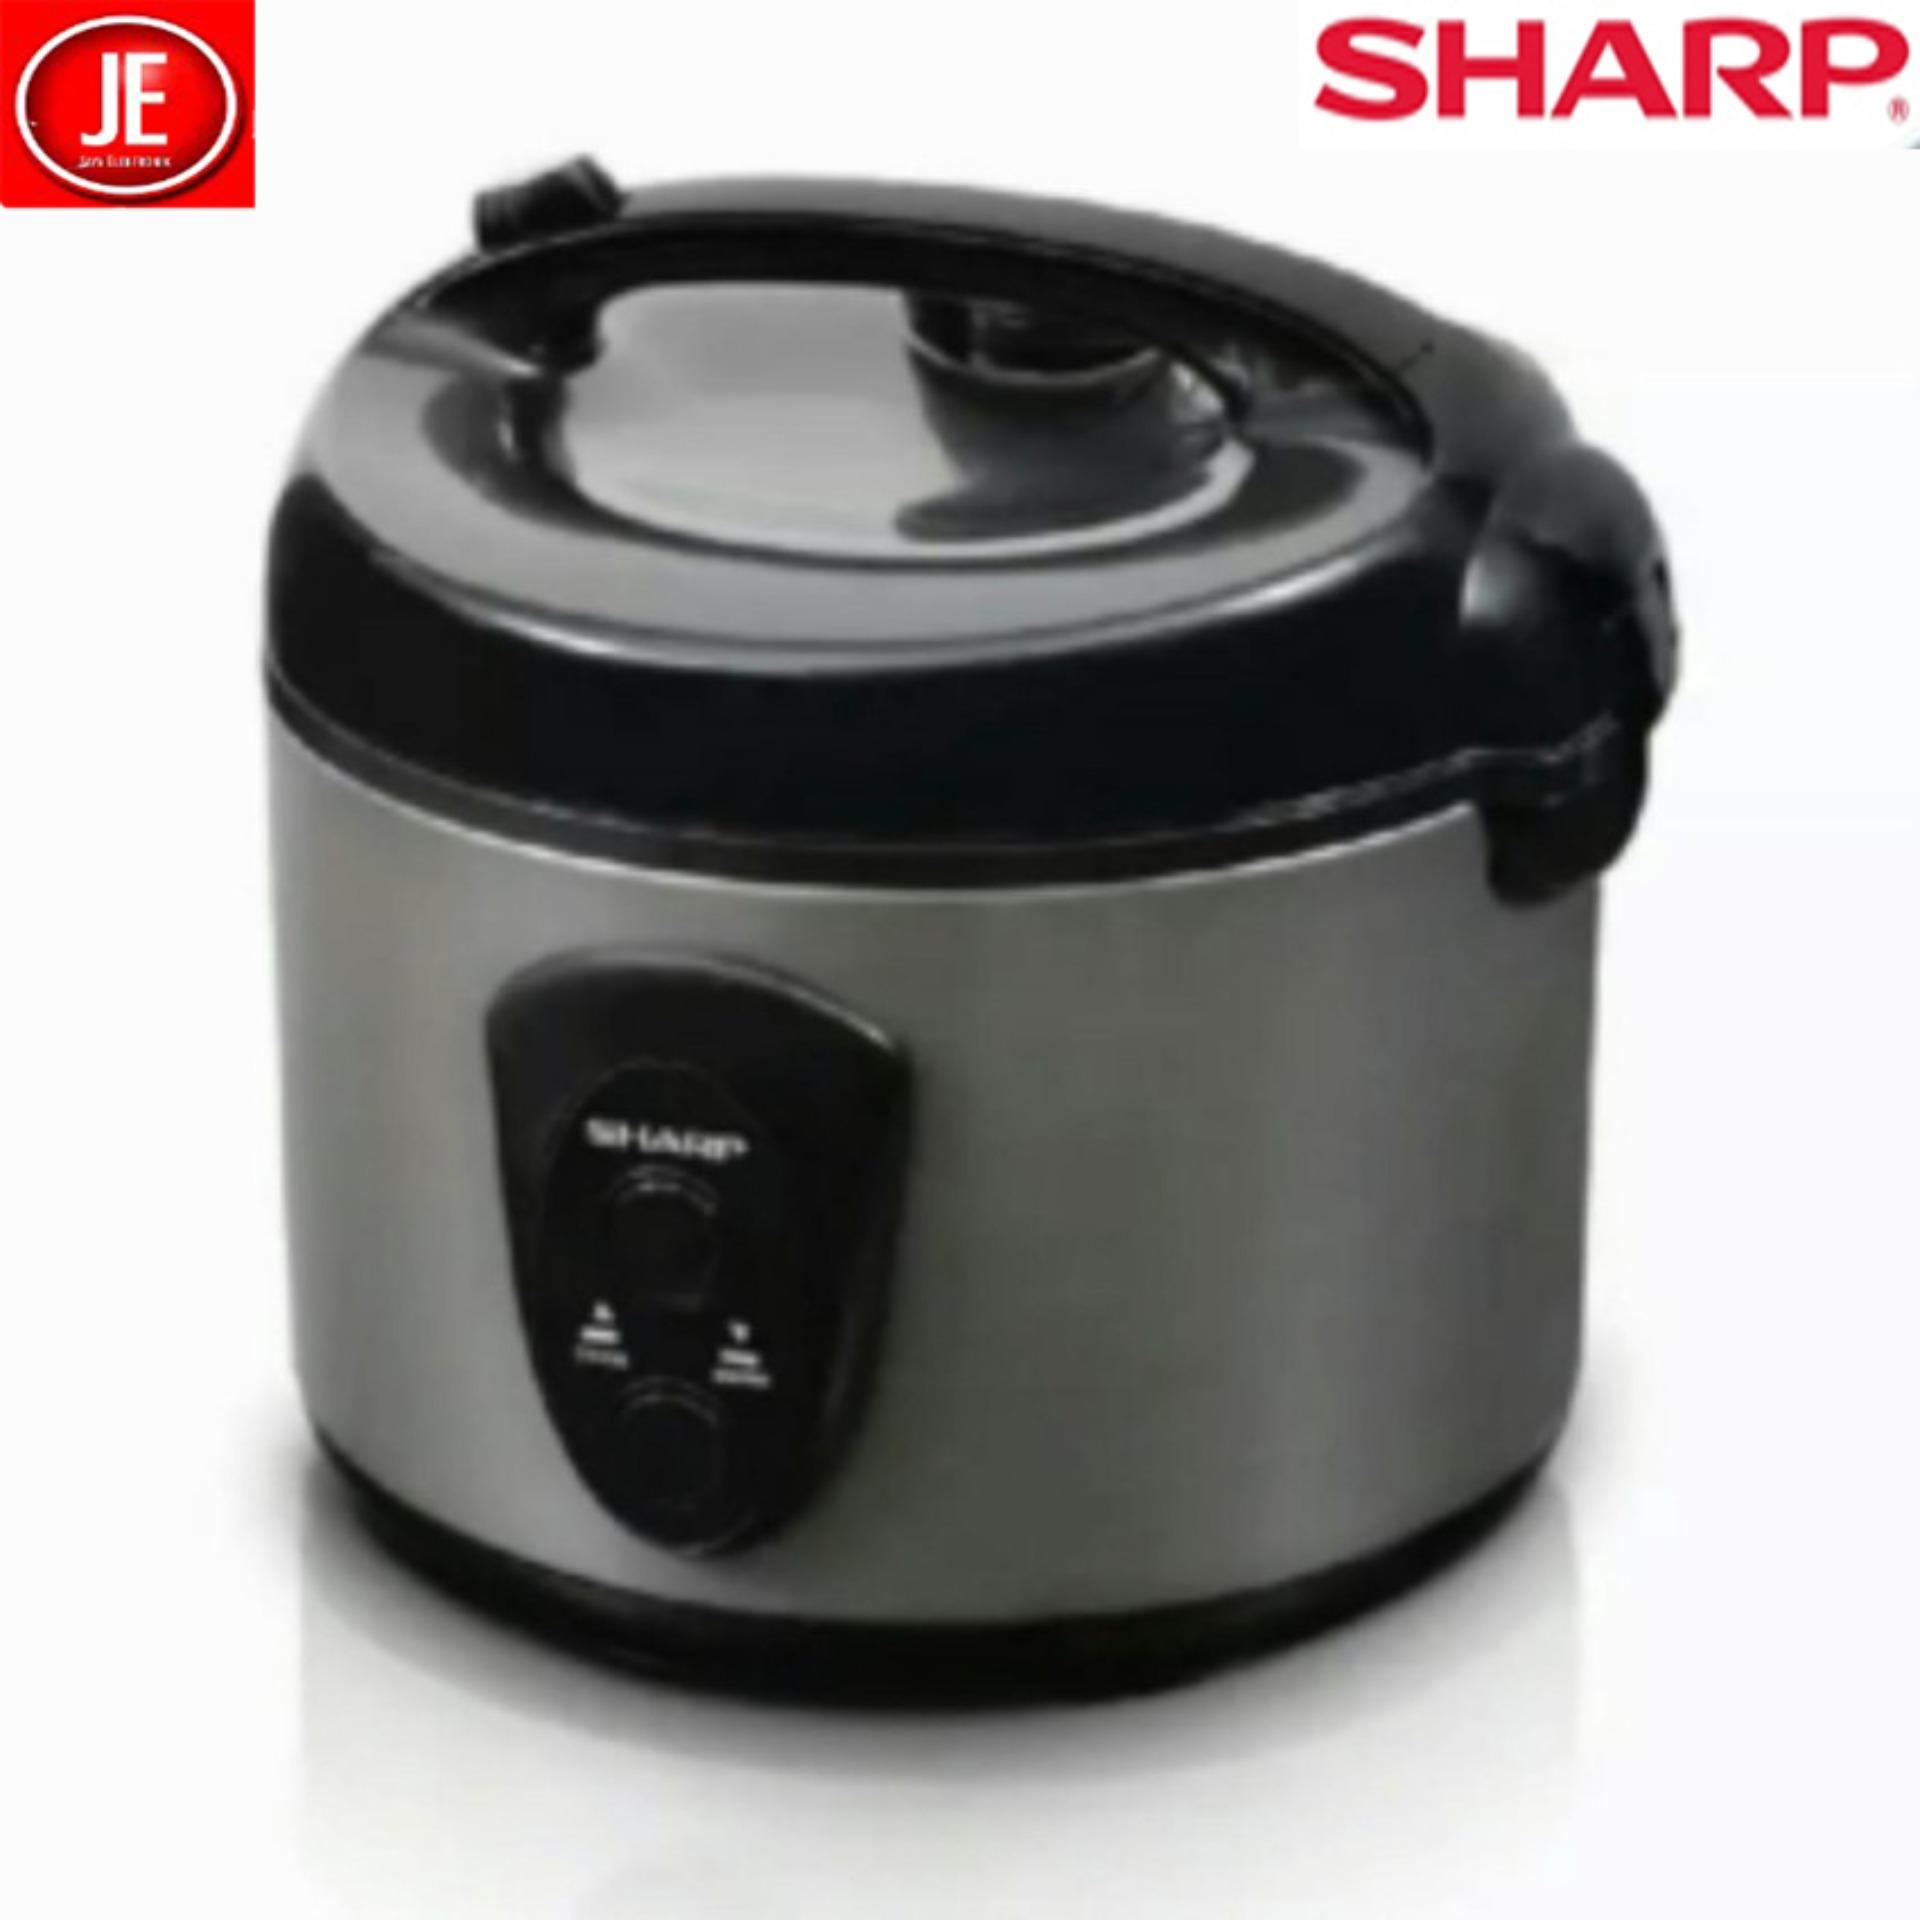 Sharp Rice Cooker KS-N18MG-SL (Silver) 3in1 1,8 liter